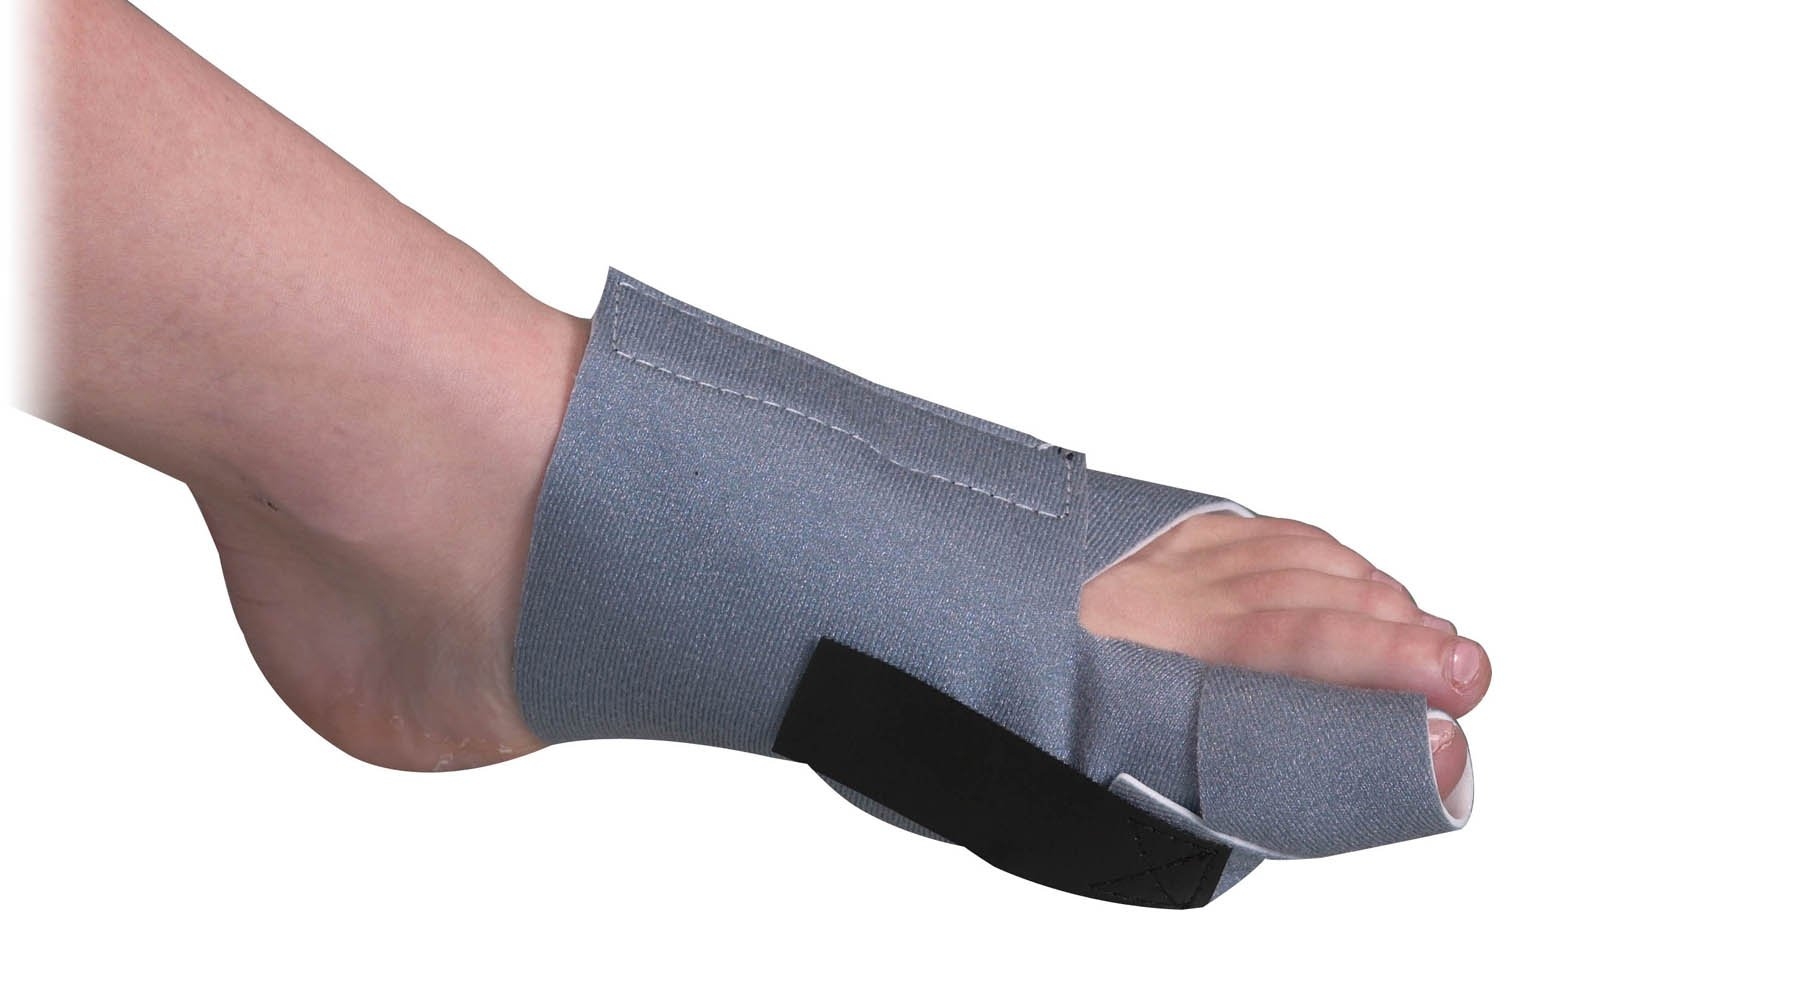 Toehold for Bunion Support and Treatment, Small/Medium, Left by Brownmed